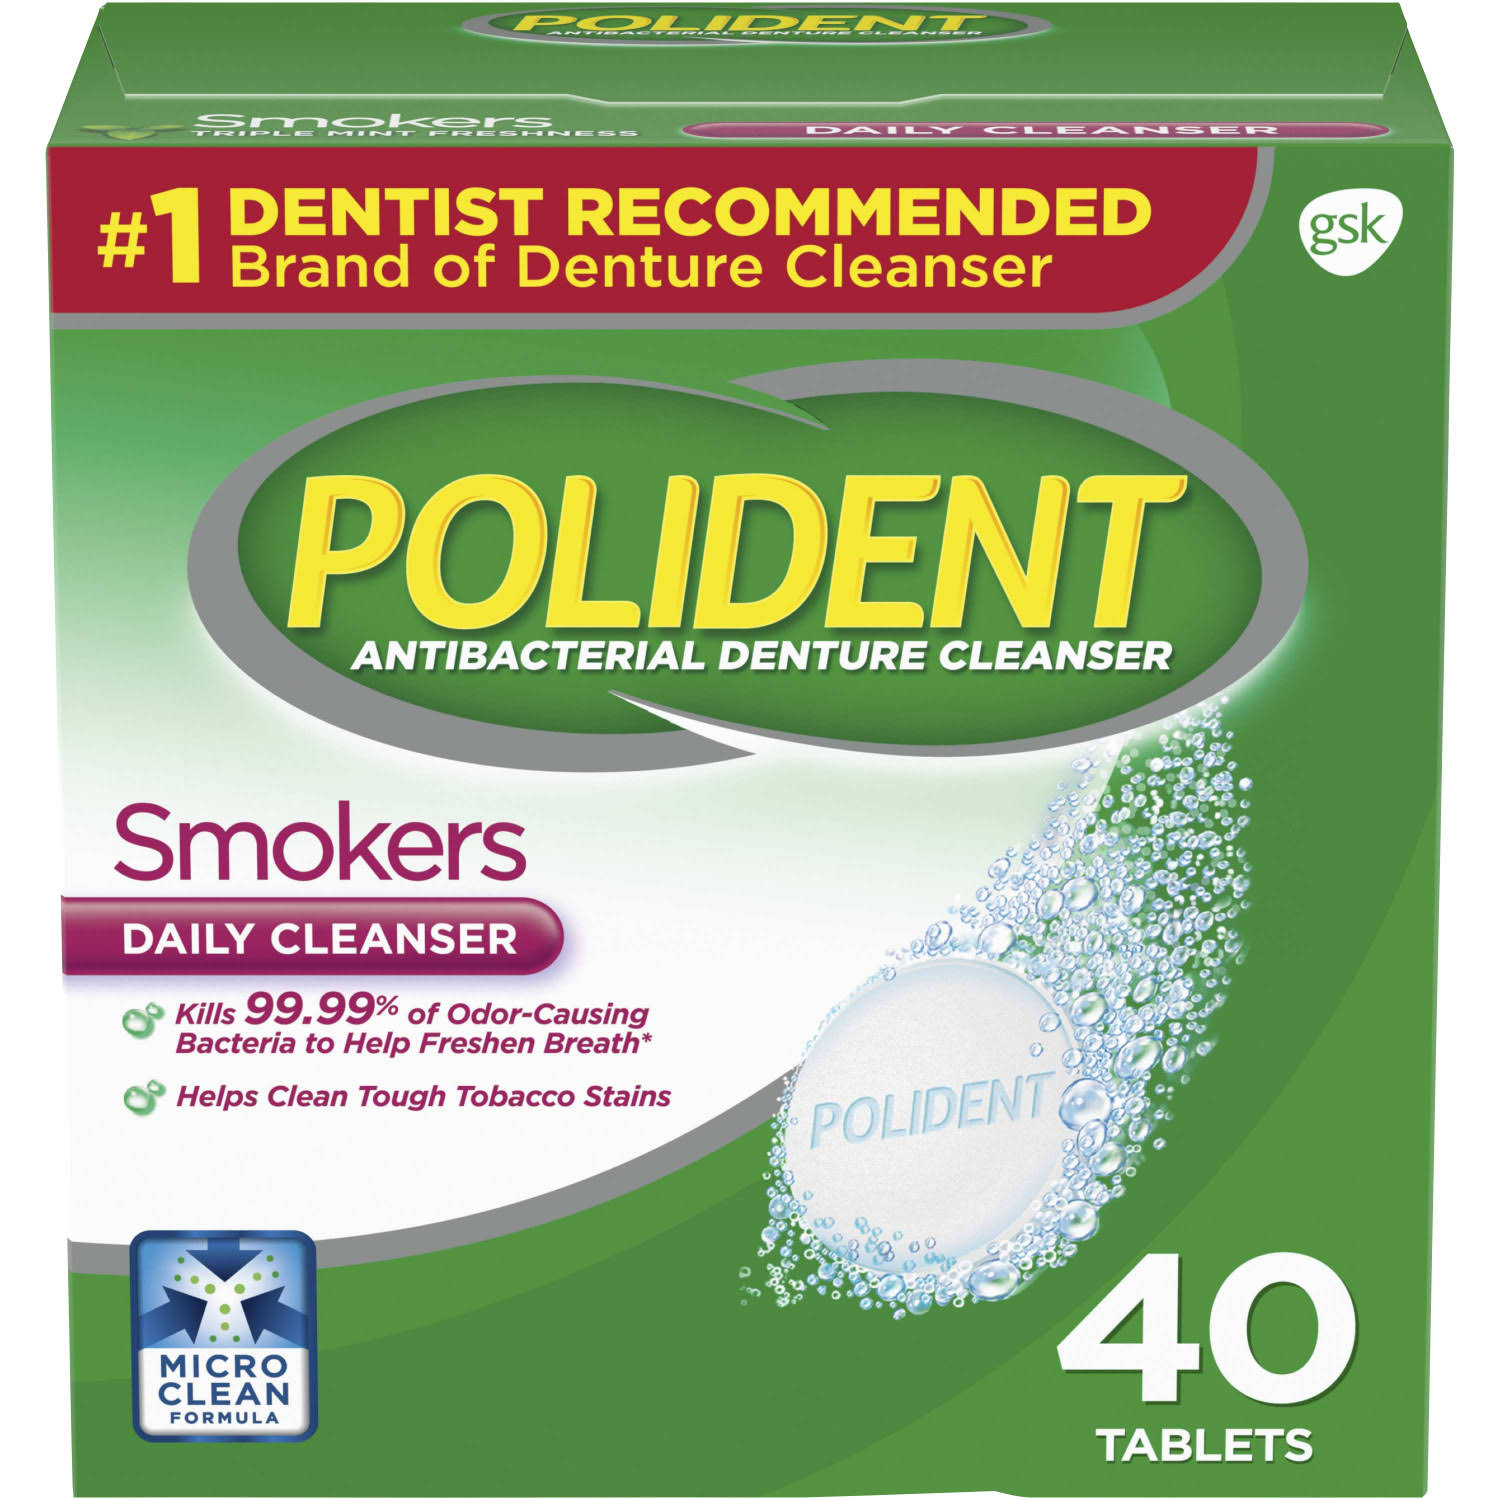 Polident Smokers Antibacterial Denture Cleanser Effervescent Tablets - 40ct